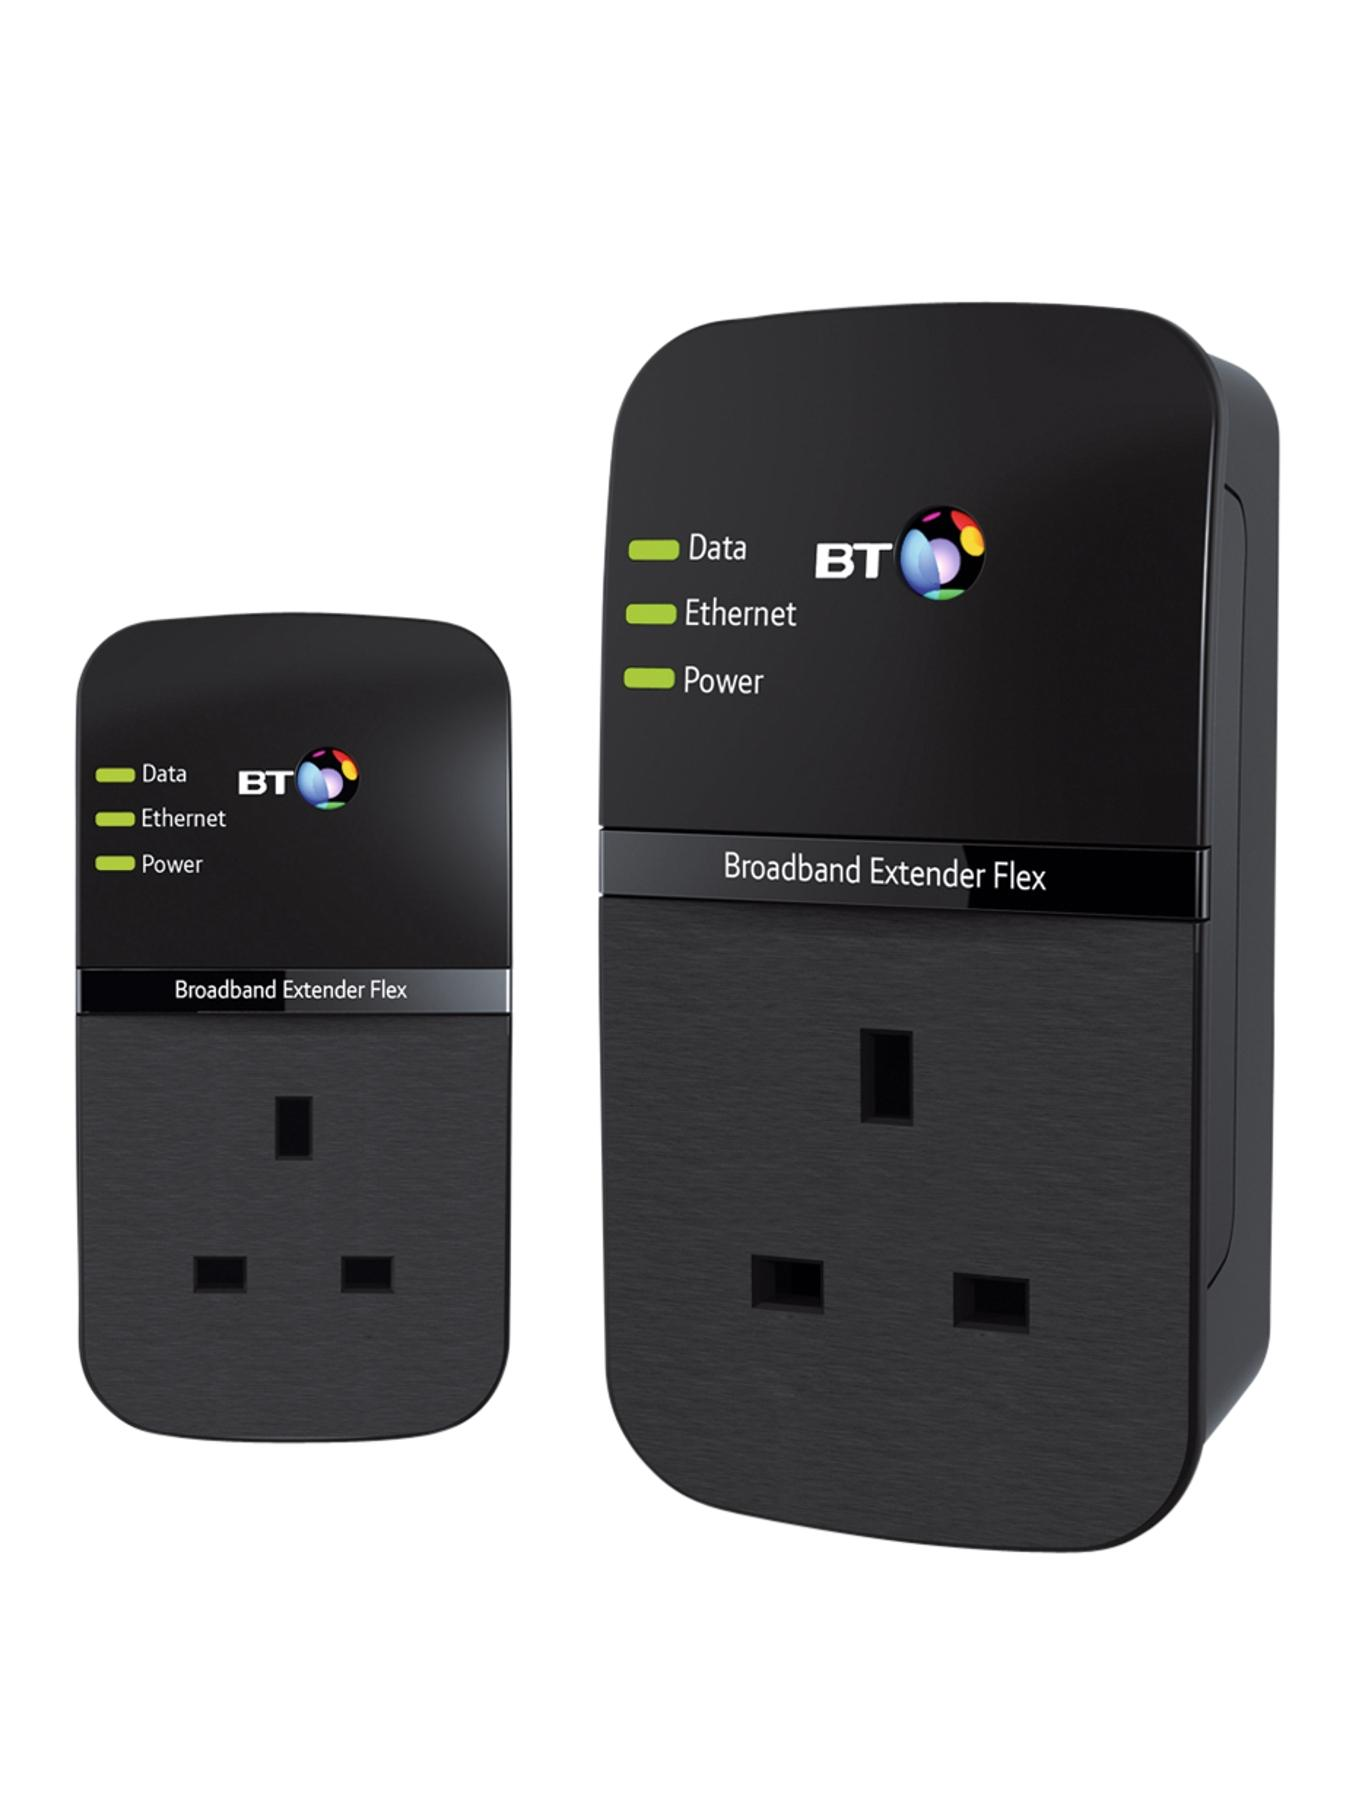 Broadband Extender Flex 500 Kit - Black